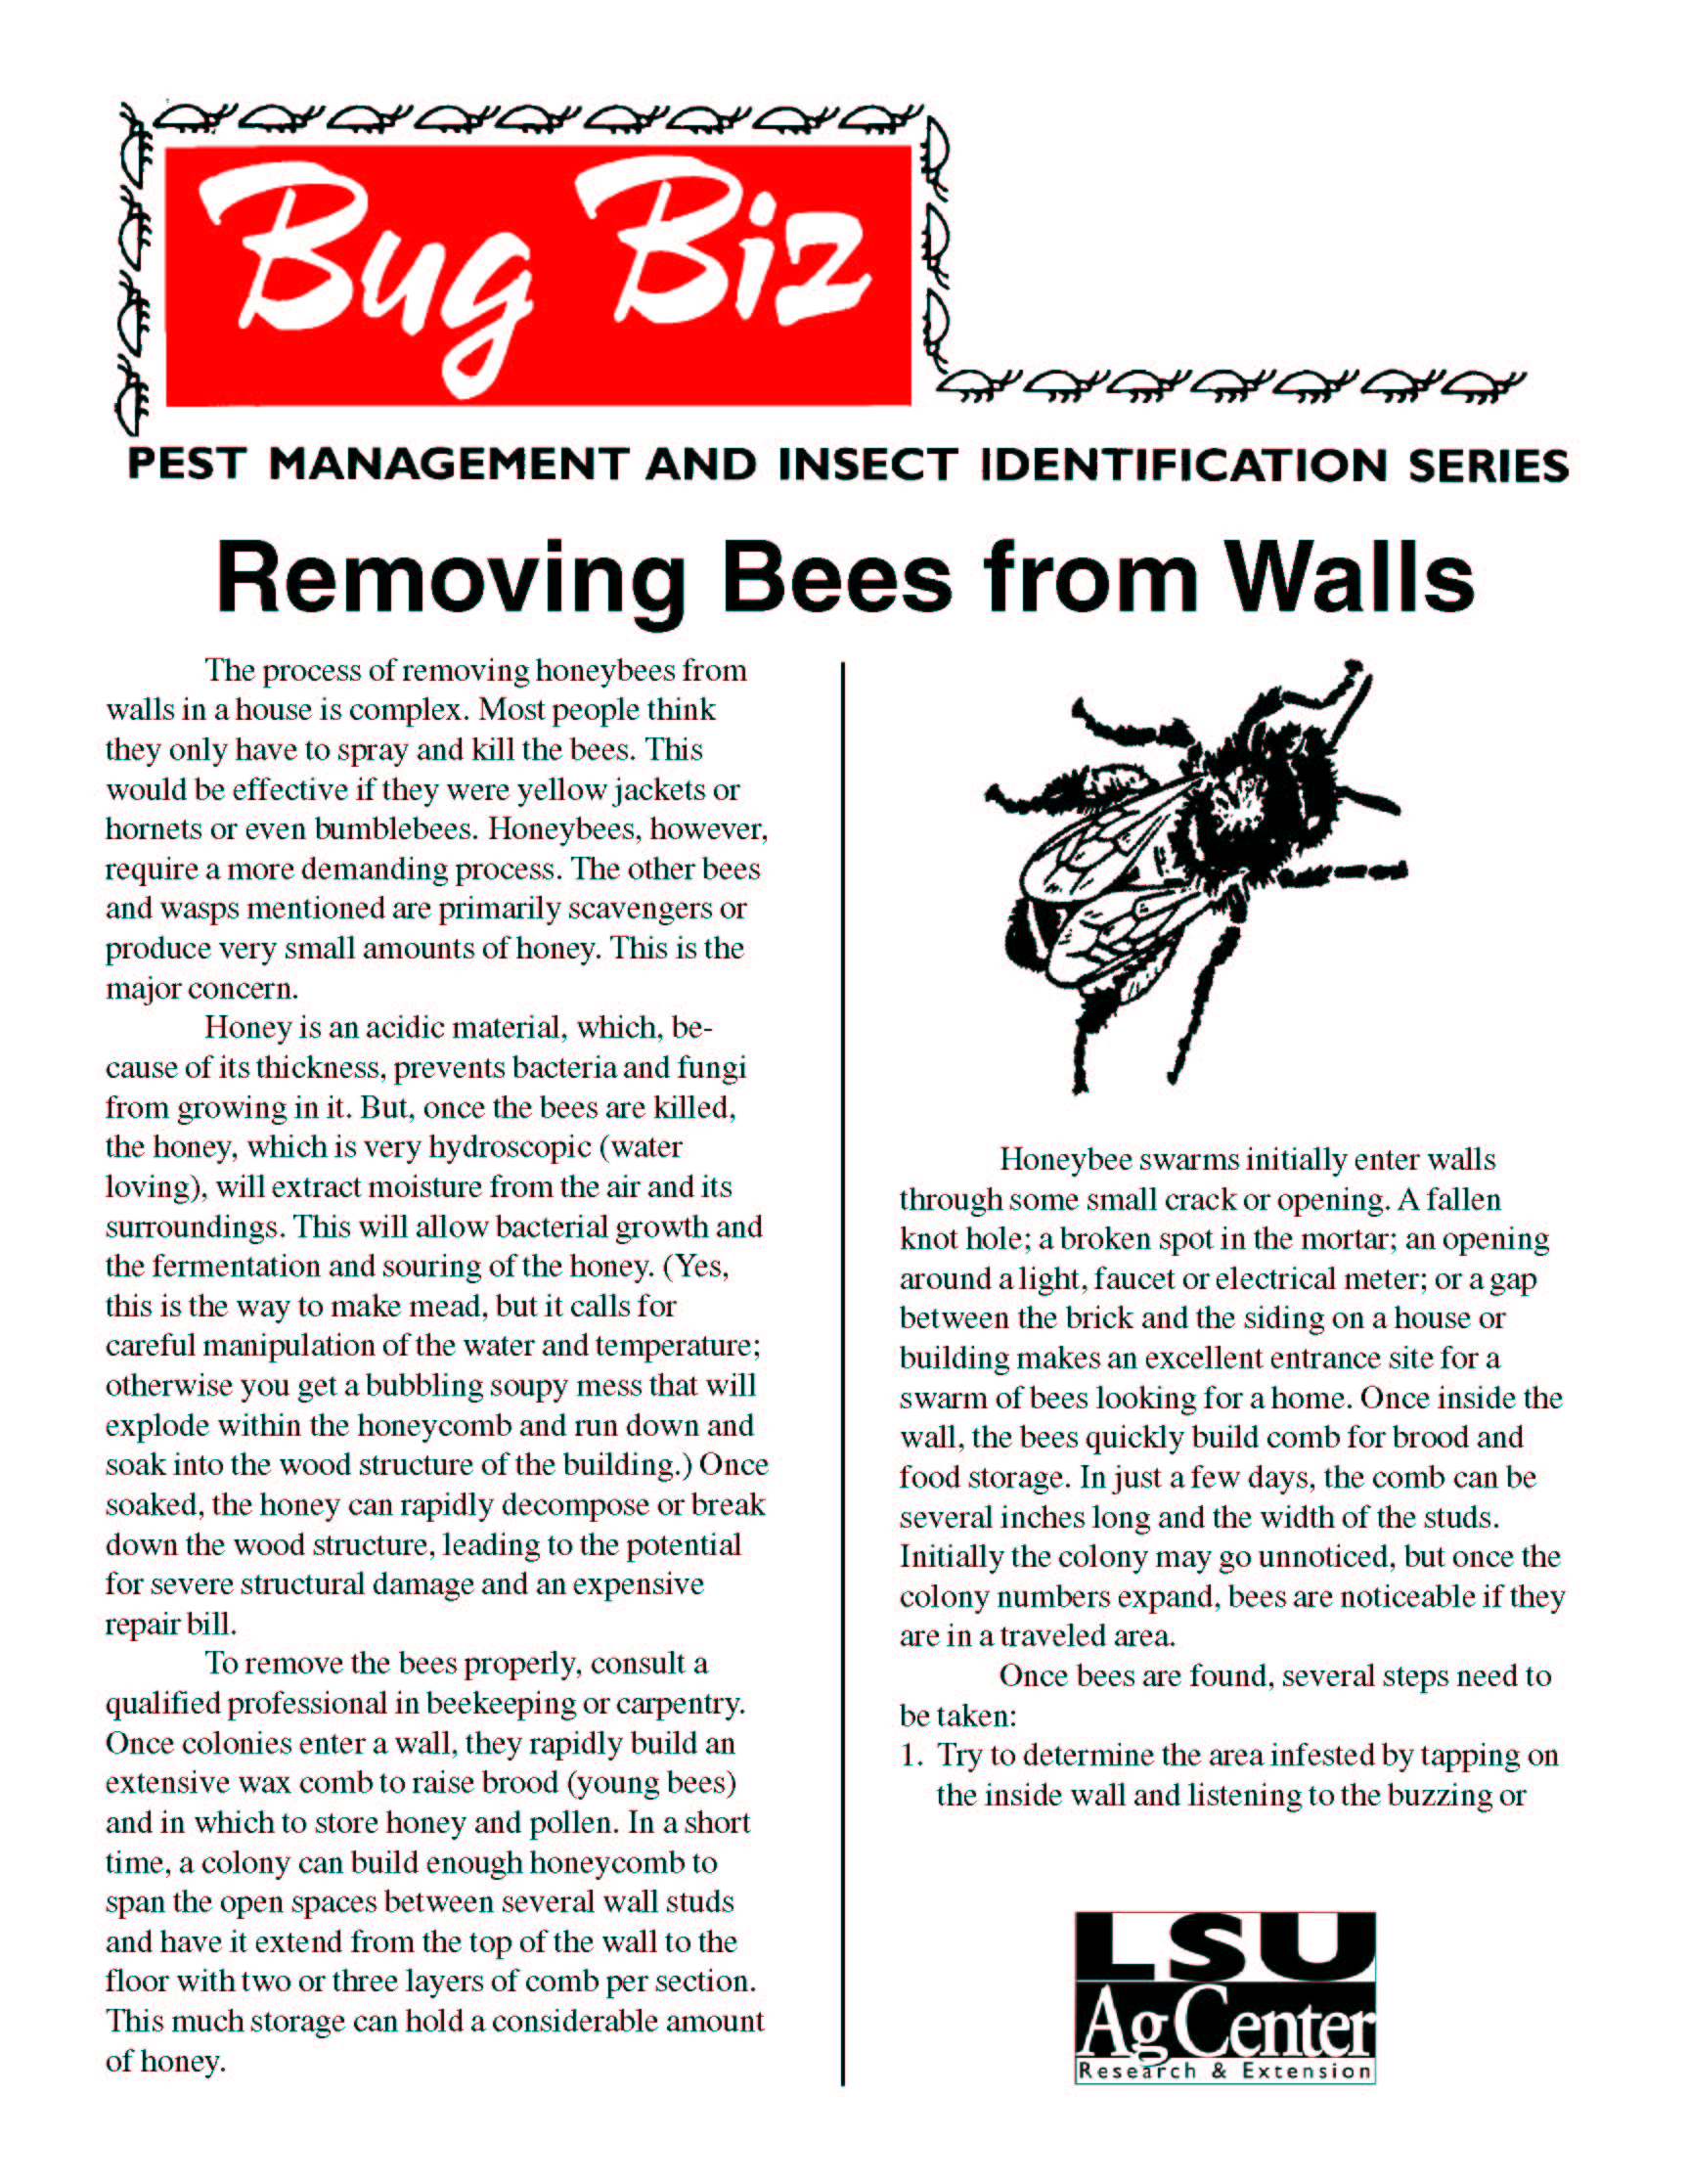 Bug Biz: Removing Bees From Walls